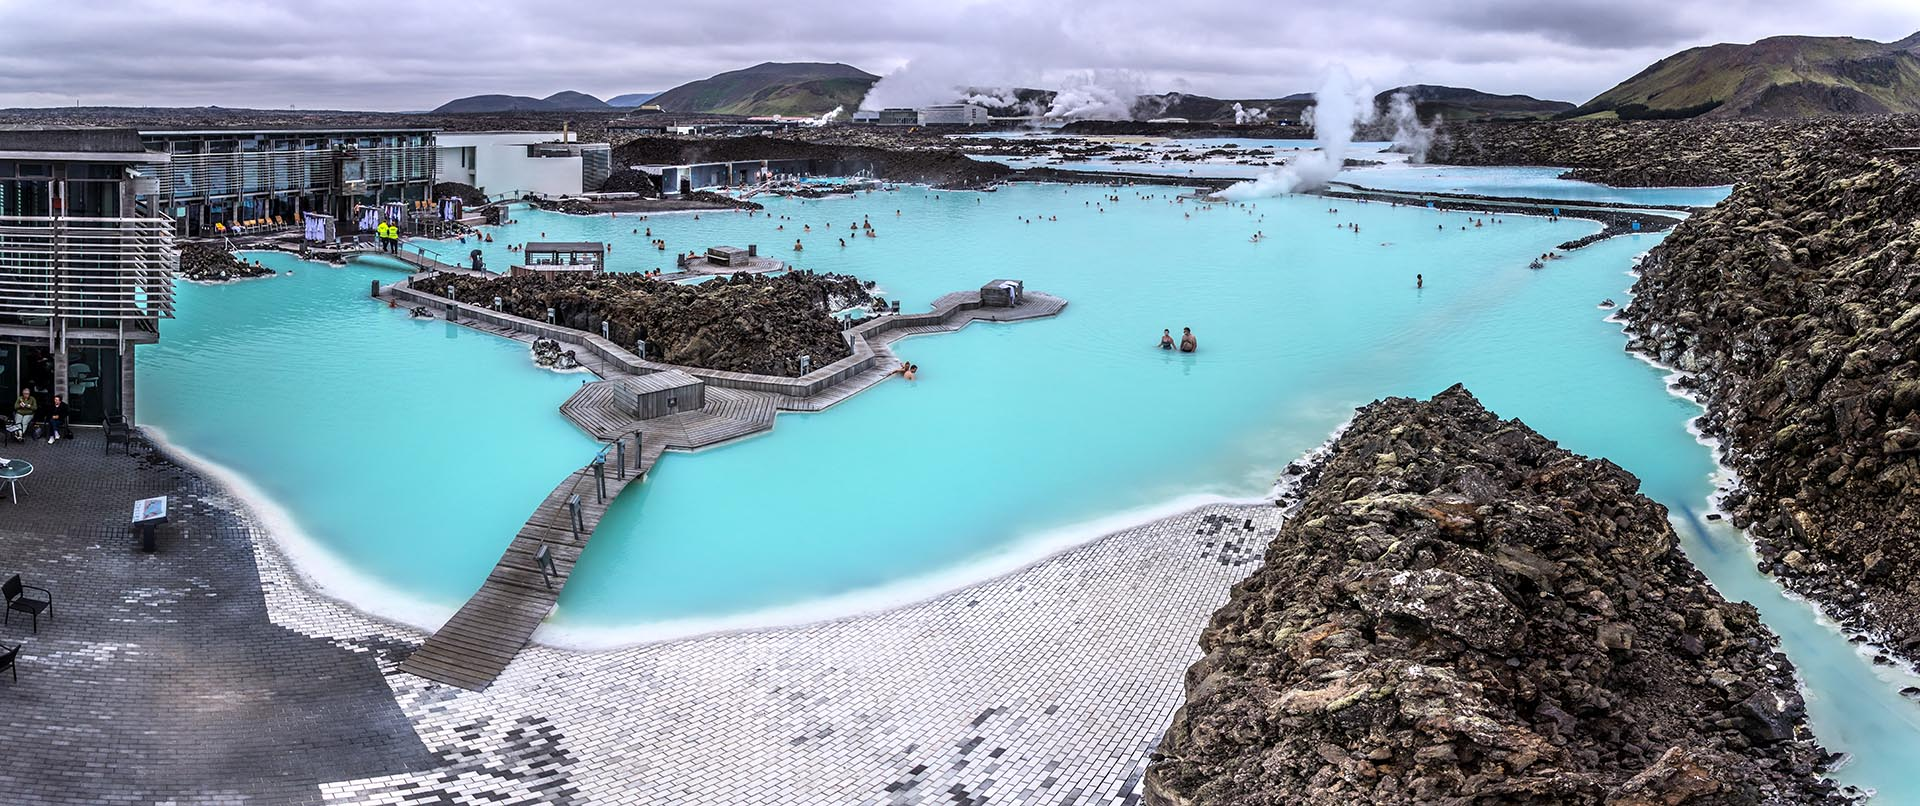 Blue Lagoon Geothermal Spa In Iceland | Lobster House